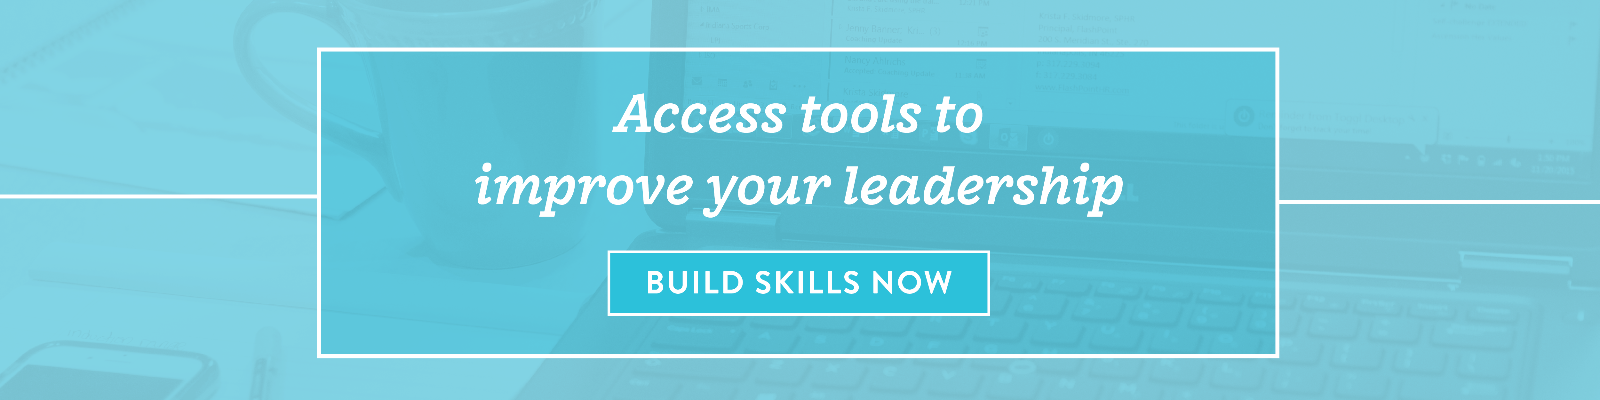 Access tools to improve your leadership